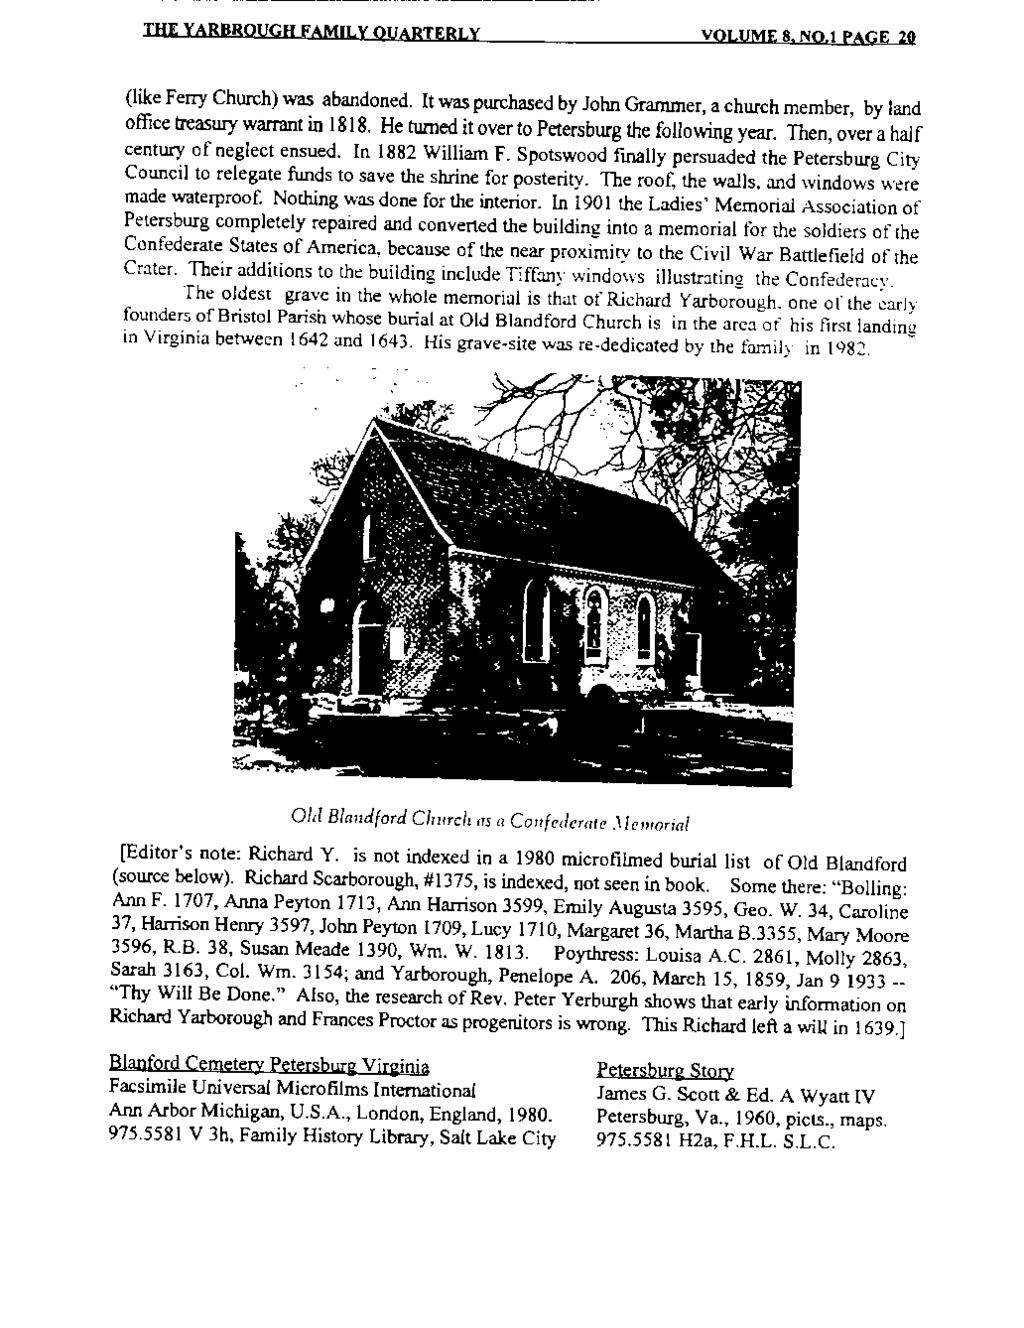 THE YARBROUGH FAMILY QUARTERLY VOLUME 8. N0.1 PAGE 20 (like Ferry Church) was abandoned. It was purchased by John Grammer, a church member, by land office treasury warrant in 1818.